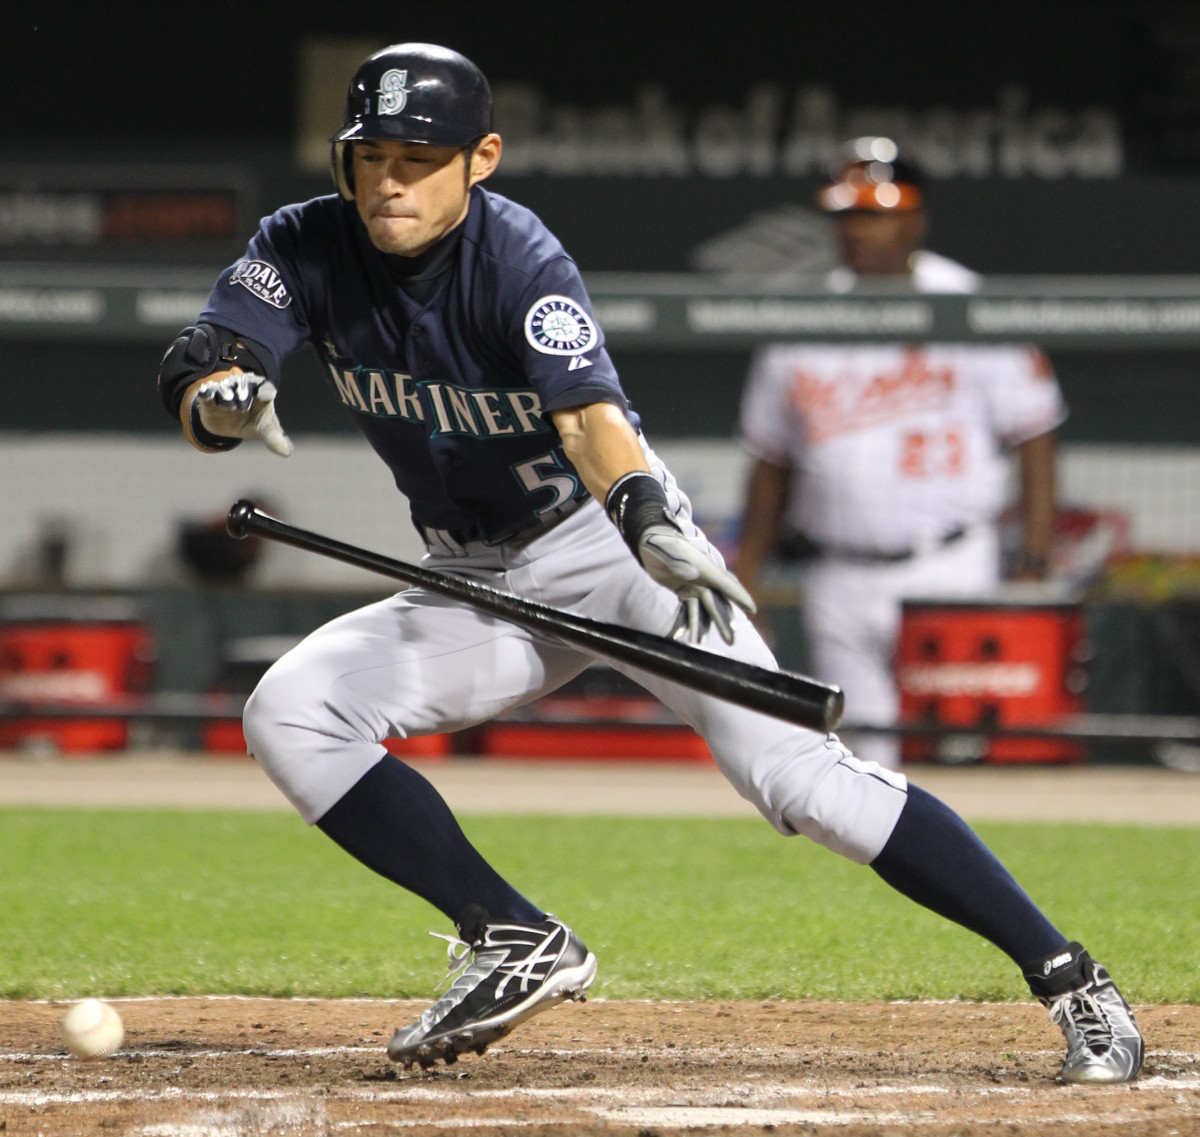 When combing his professional hits in Japan and in the United States, Ichiro Suzuki has more than any other player in history.